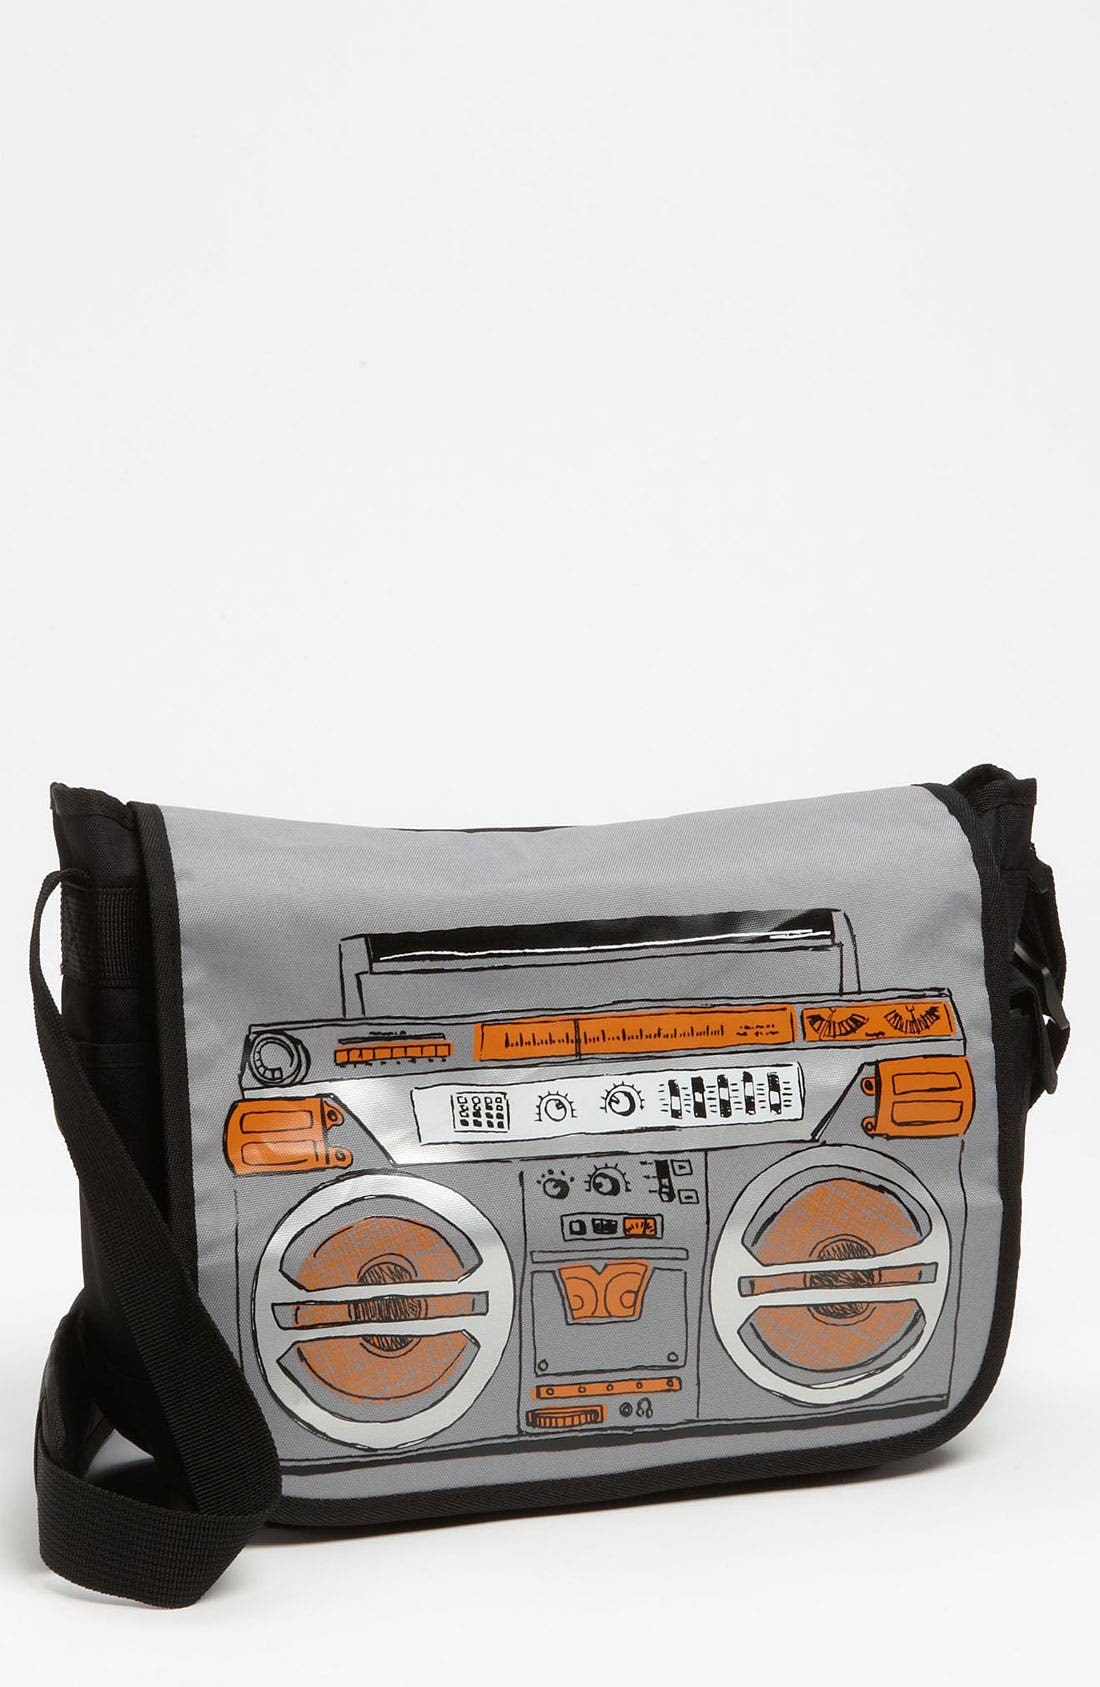 Alternate Image 1 Selected - Hanna Andersson Messenger Bag (Boys)